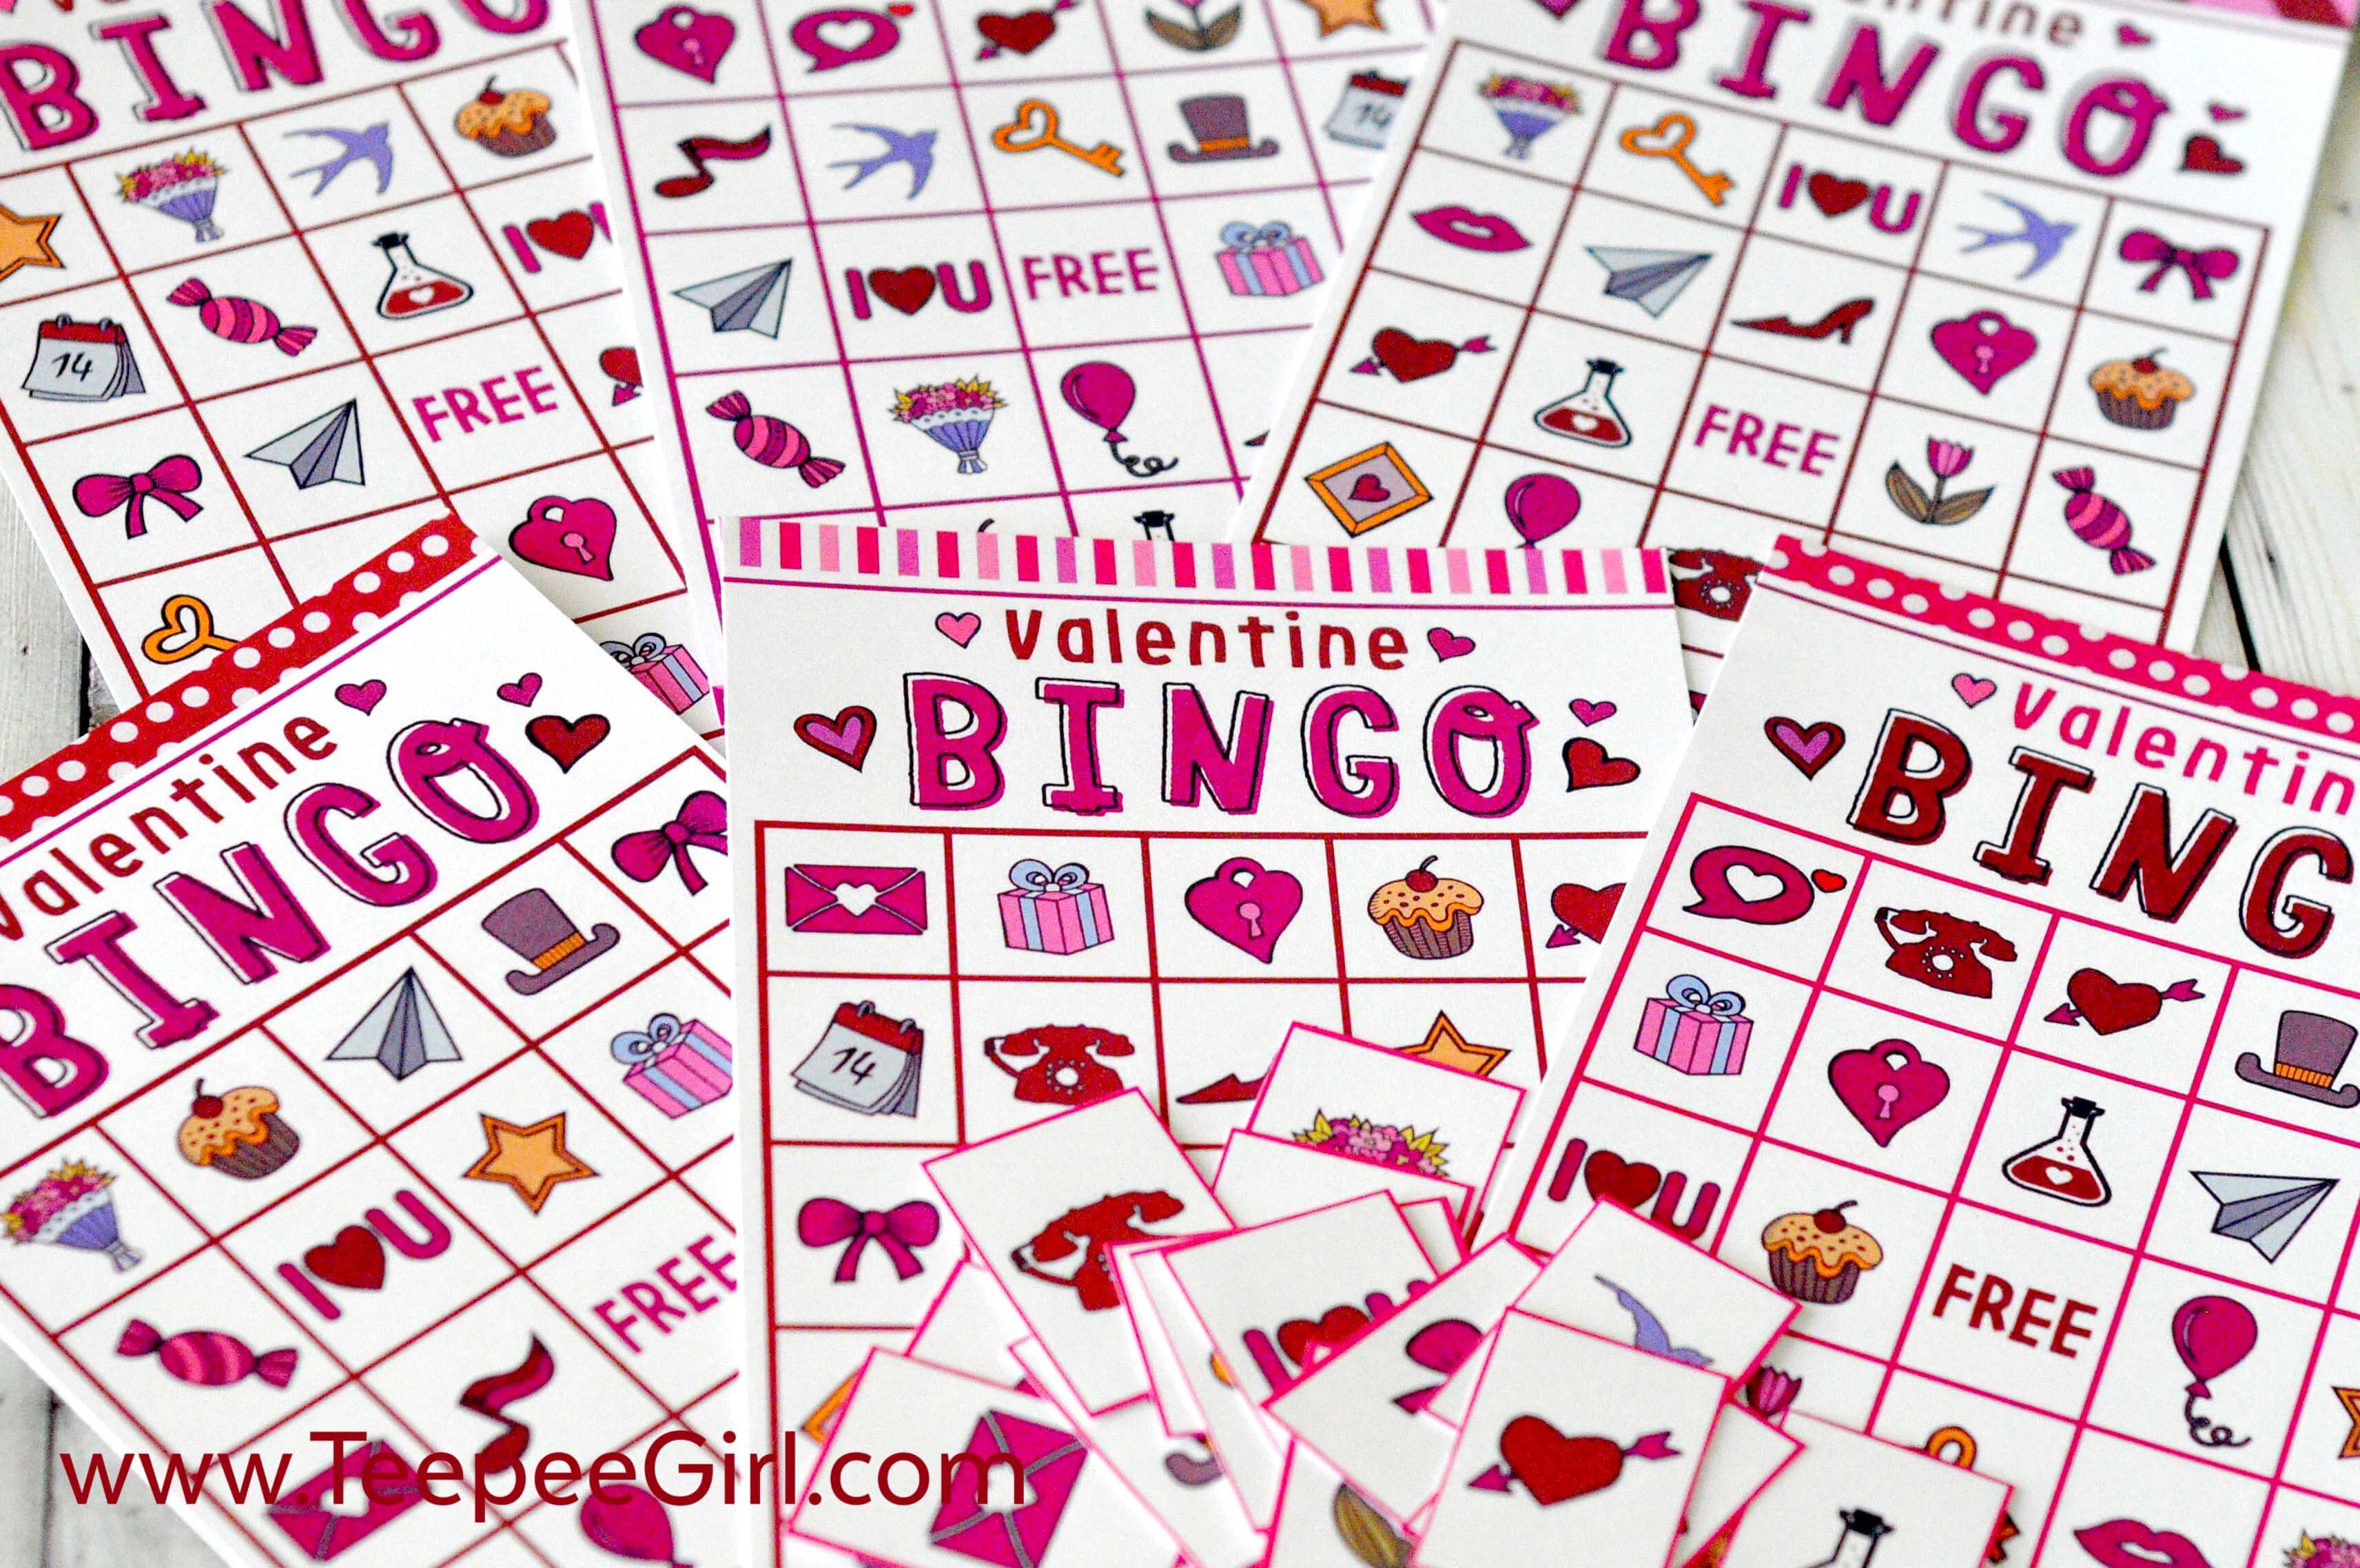 image about Valentines Printable Free identify No cost Valentines Working day Printable Bingo Activity